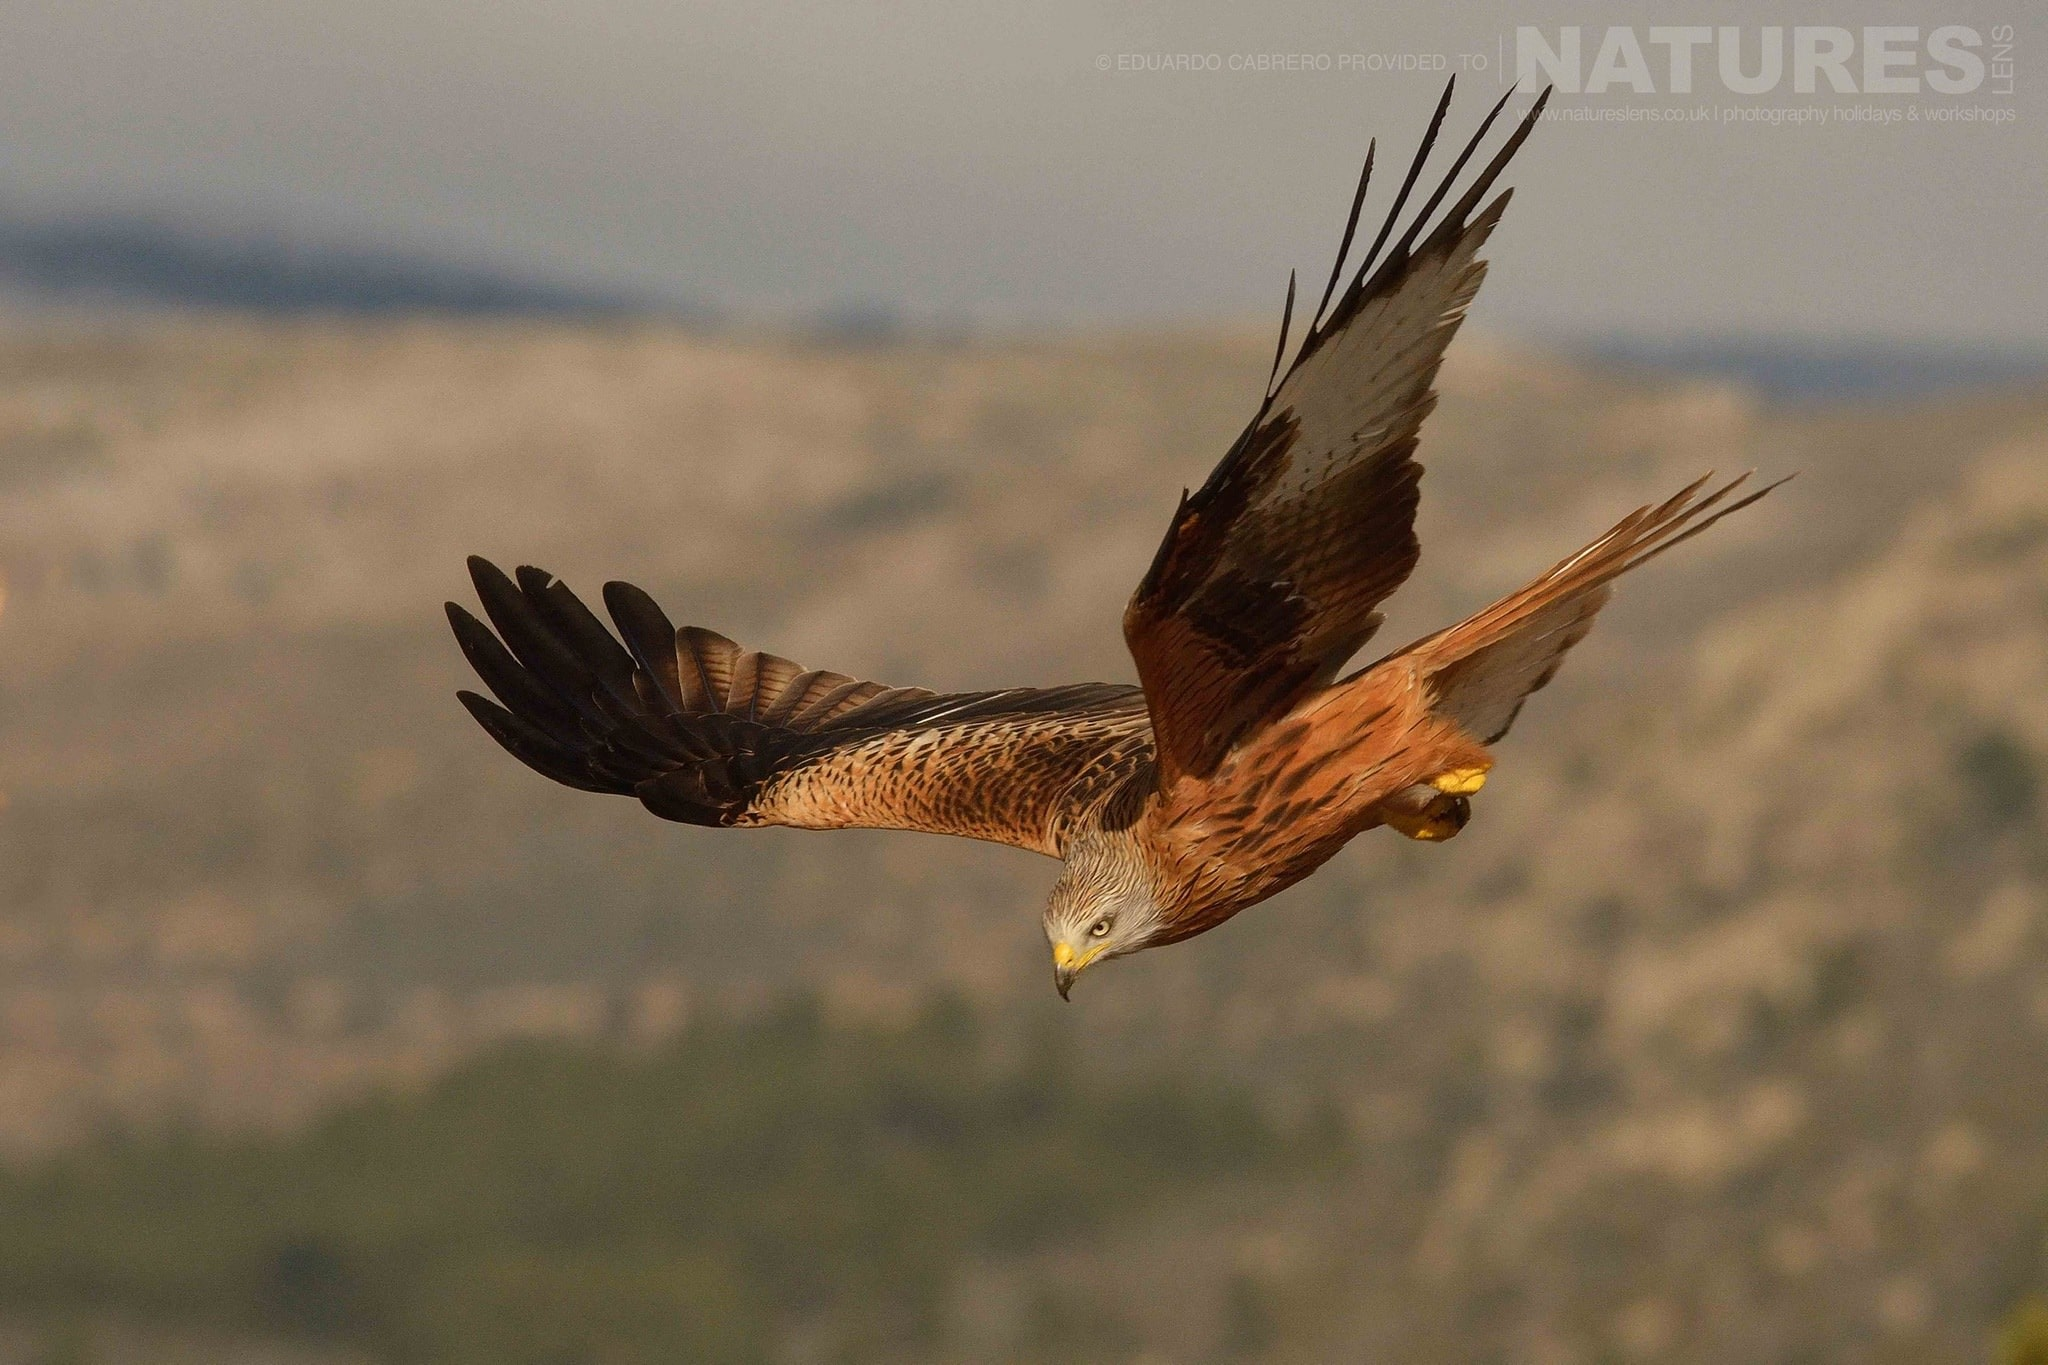 A Red Kite dives towards the ground photographed at the locations used for the NaturesLens Central Spain's Eagles Raptors photography holiday